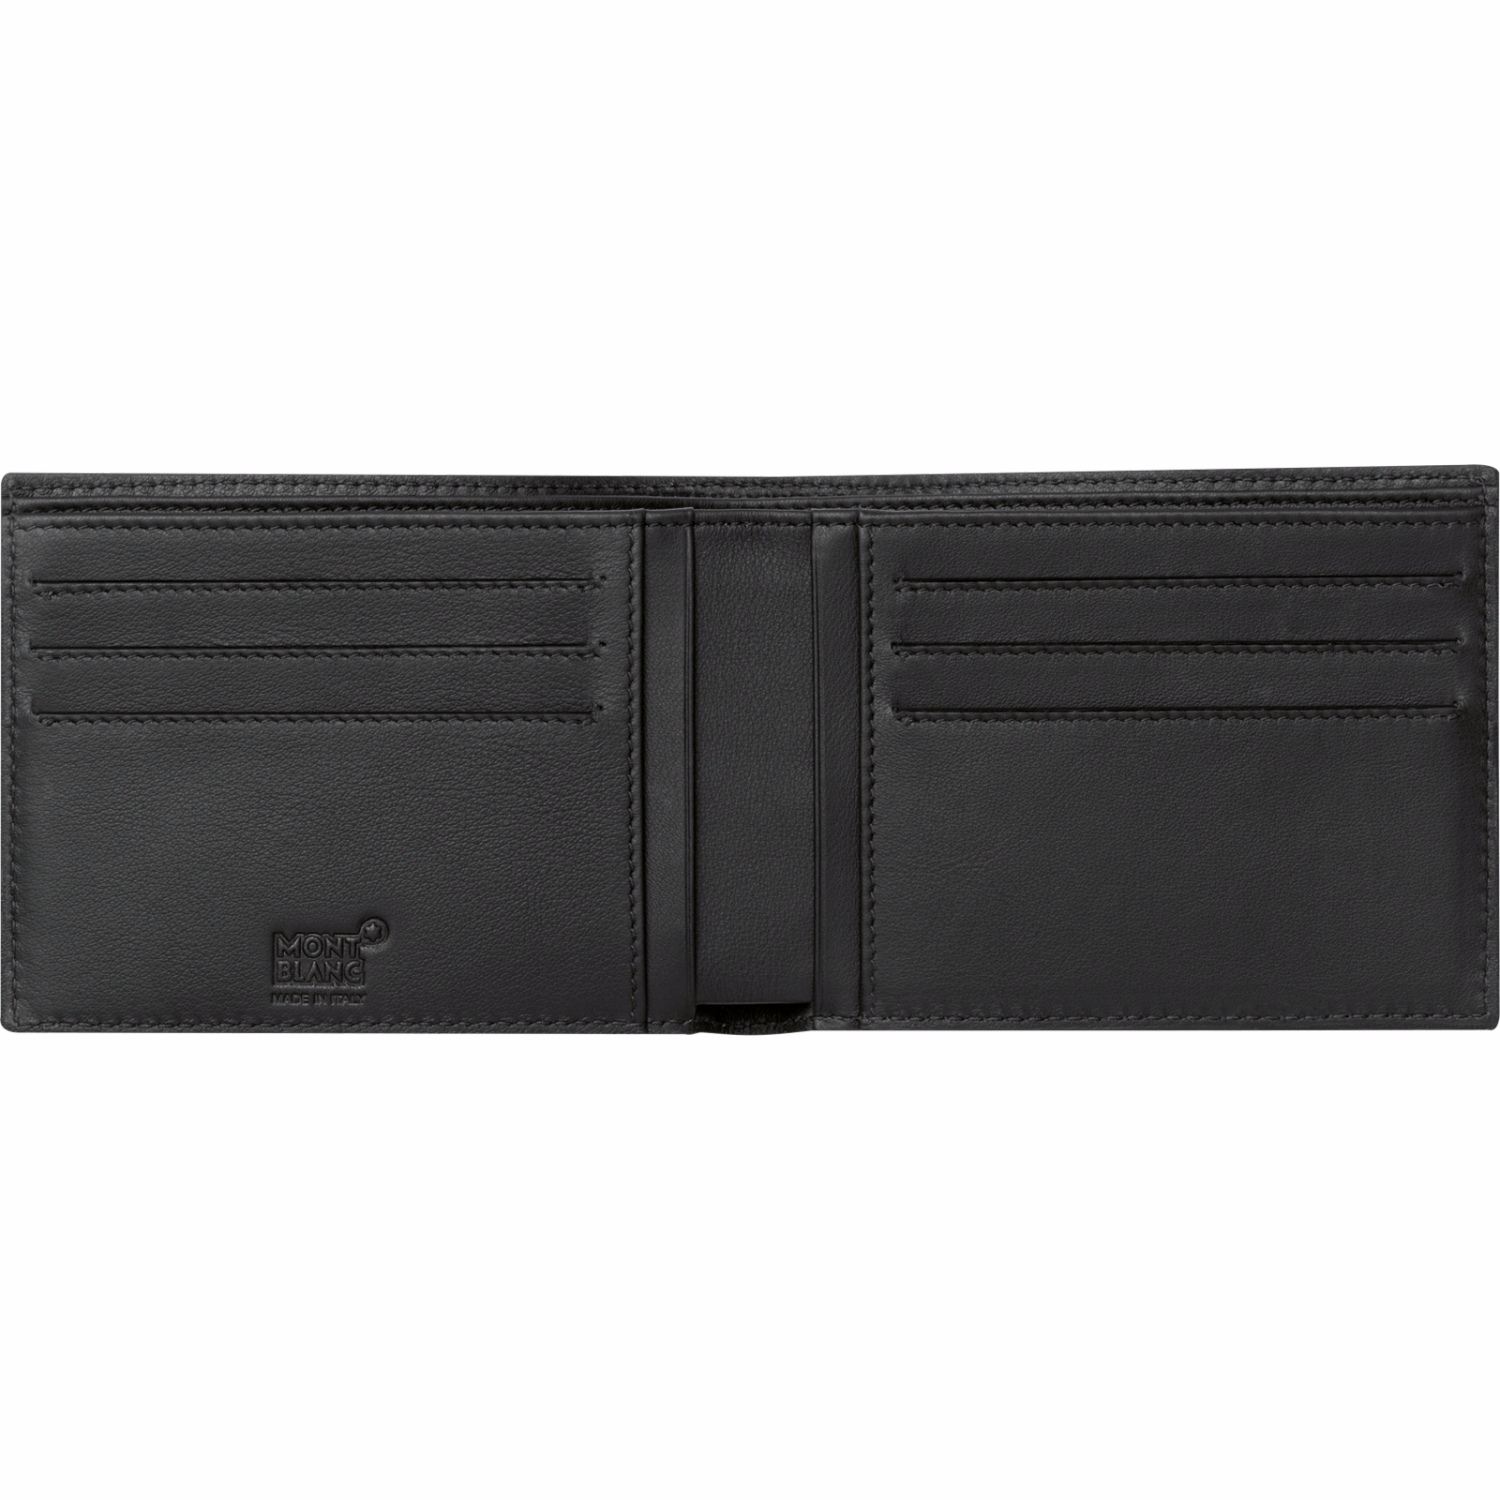 Ví nam cao cấp Montblanc Extreme Wallet 6CC 111143